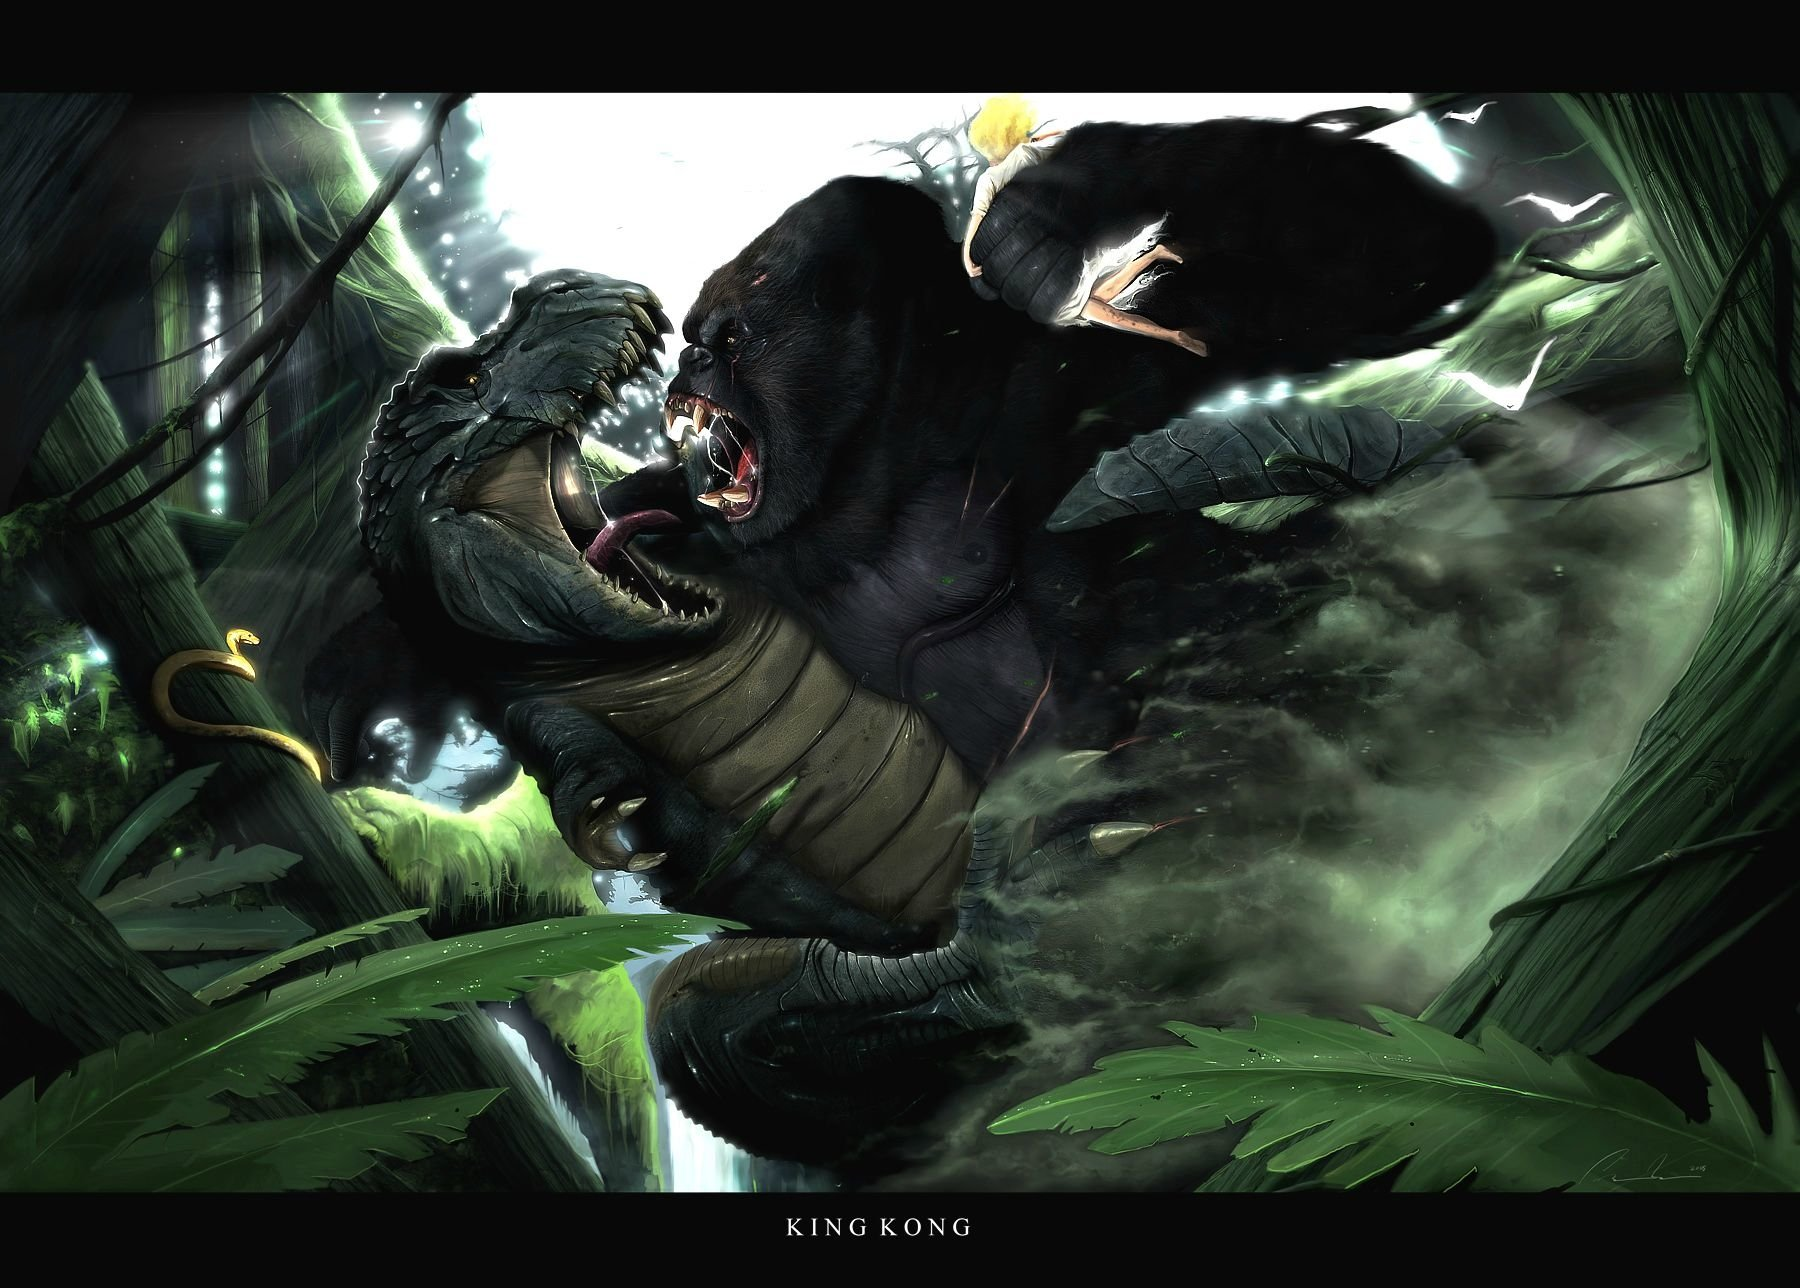 King Kong 2005 Wallpaper And Background Image